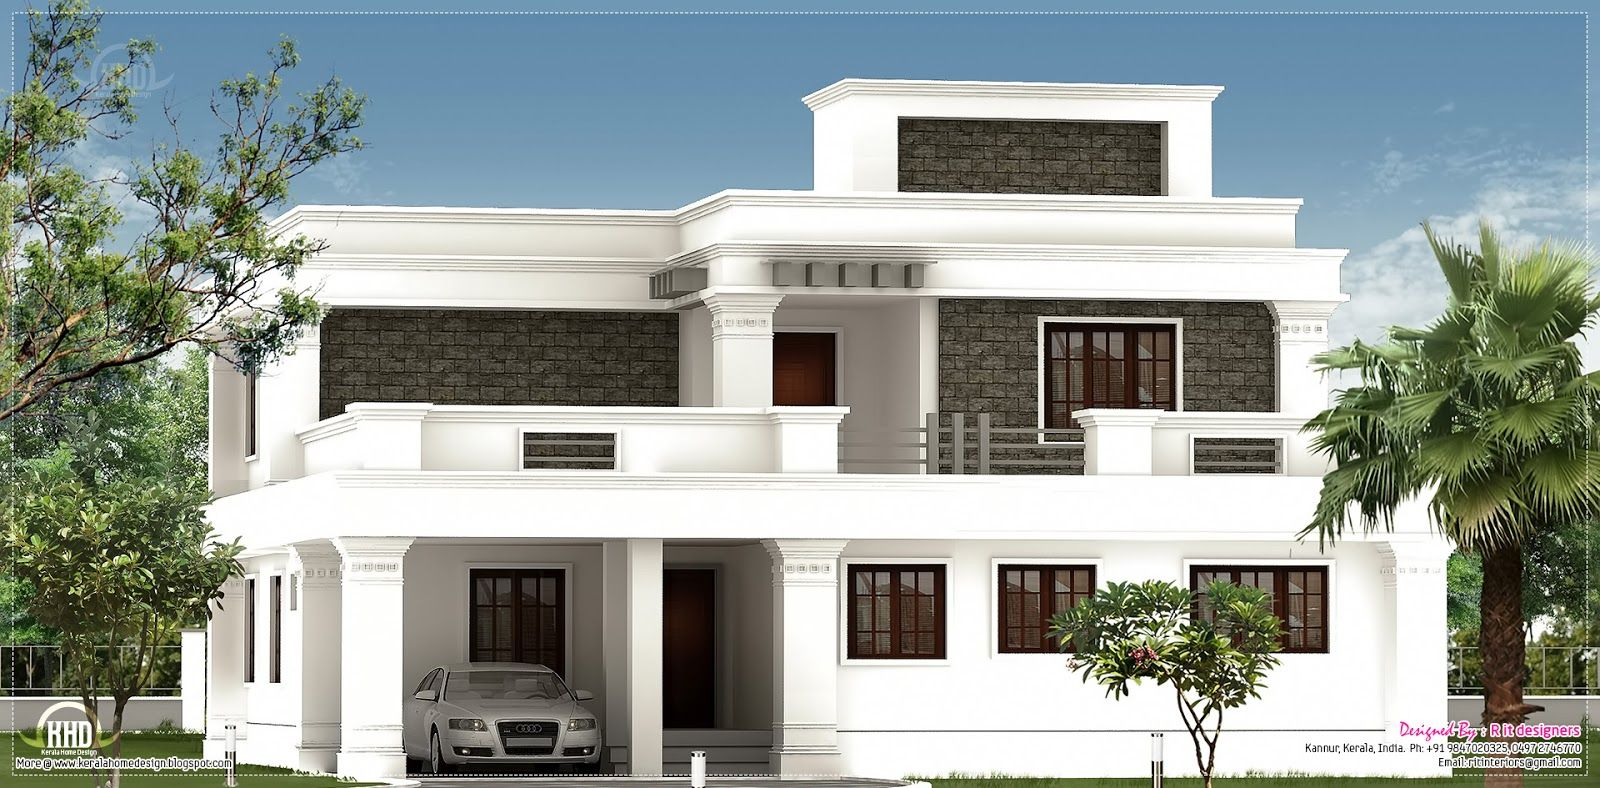 Flat roof homes designs flat roof villa exterior in 2400 Contemporary flat roof designs